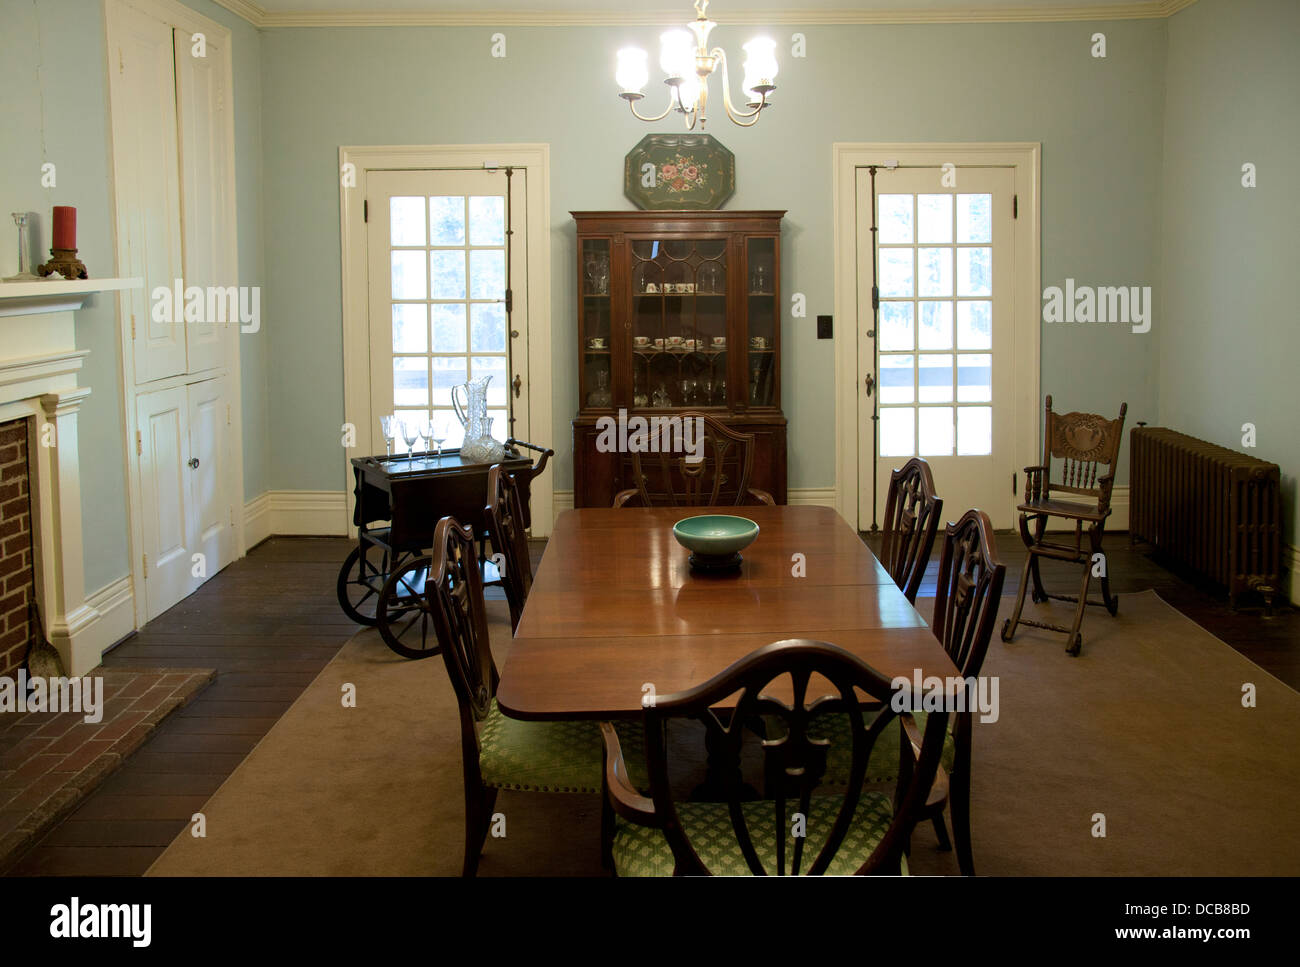 Bon The Dining Room At Rowan Oak The Home Of William Faulkner In Oxford  Mississippi USA